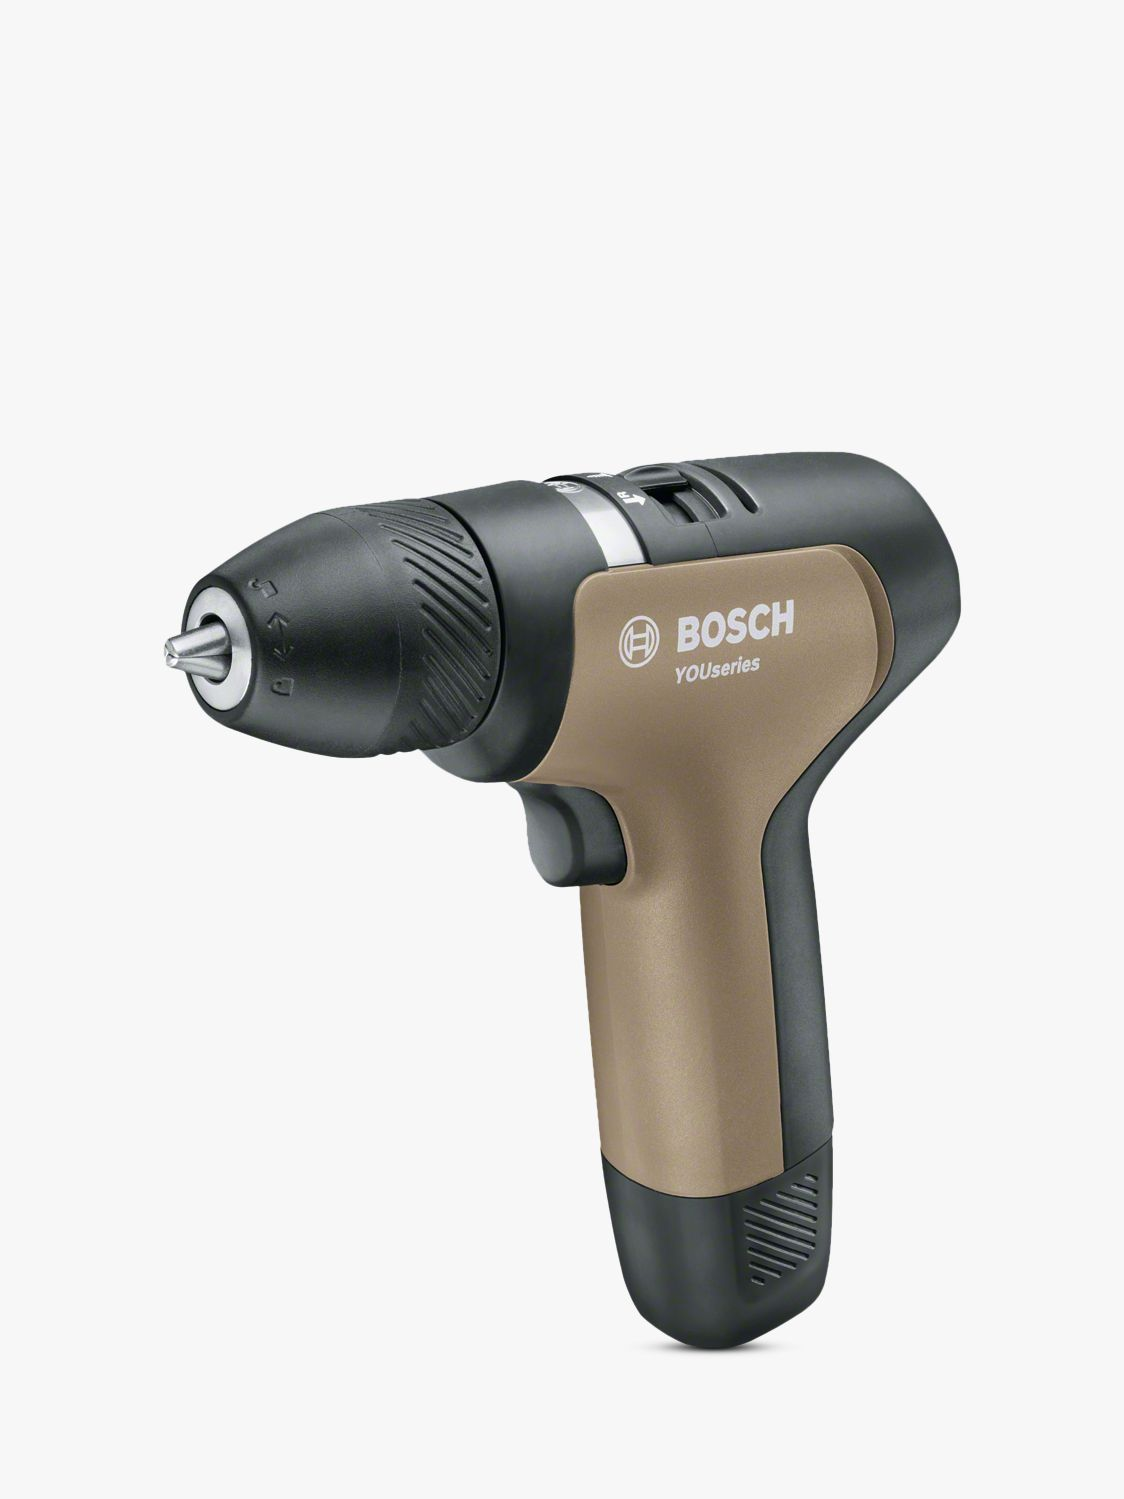 Bosch Bosch YOUseries Electric Power Drill